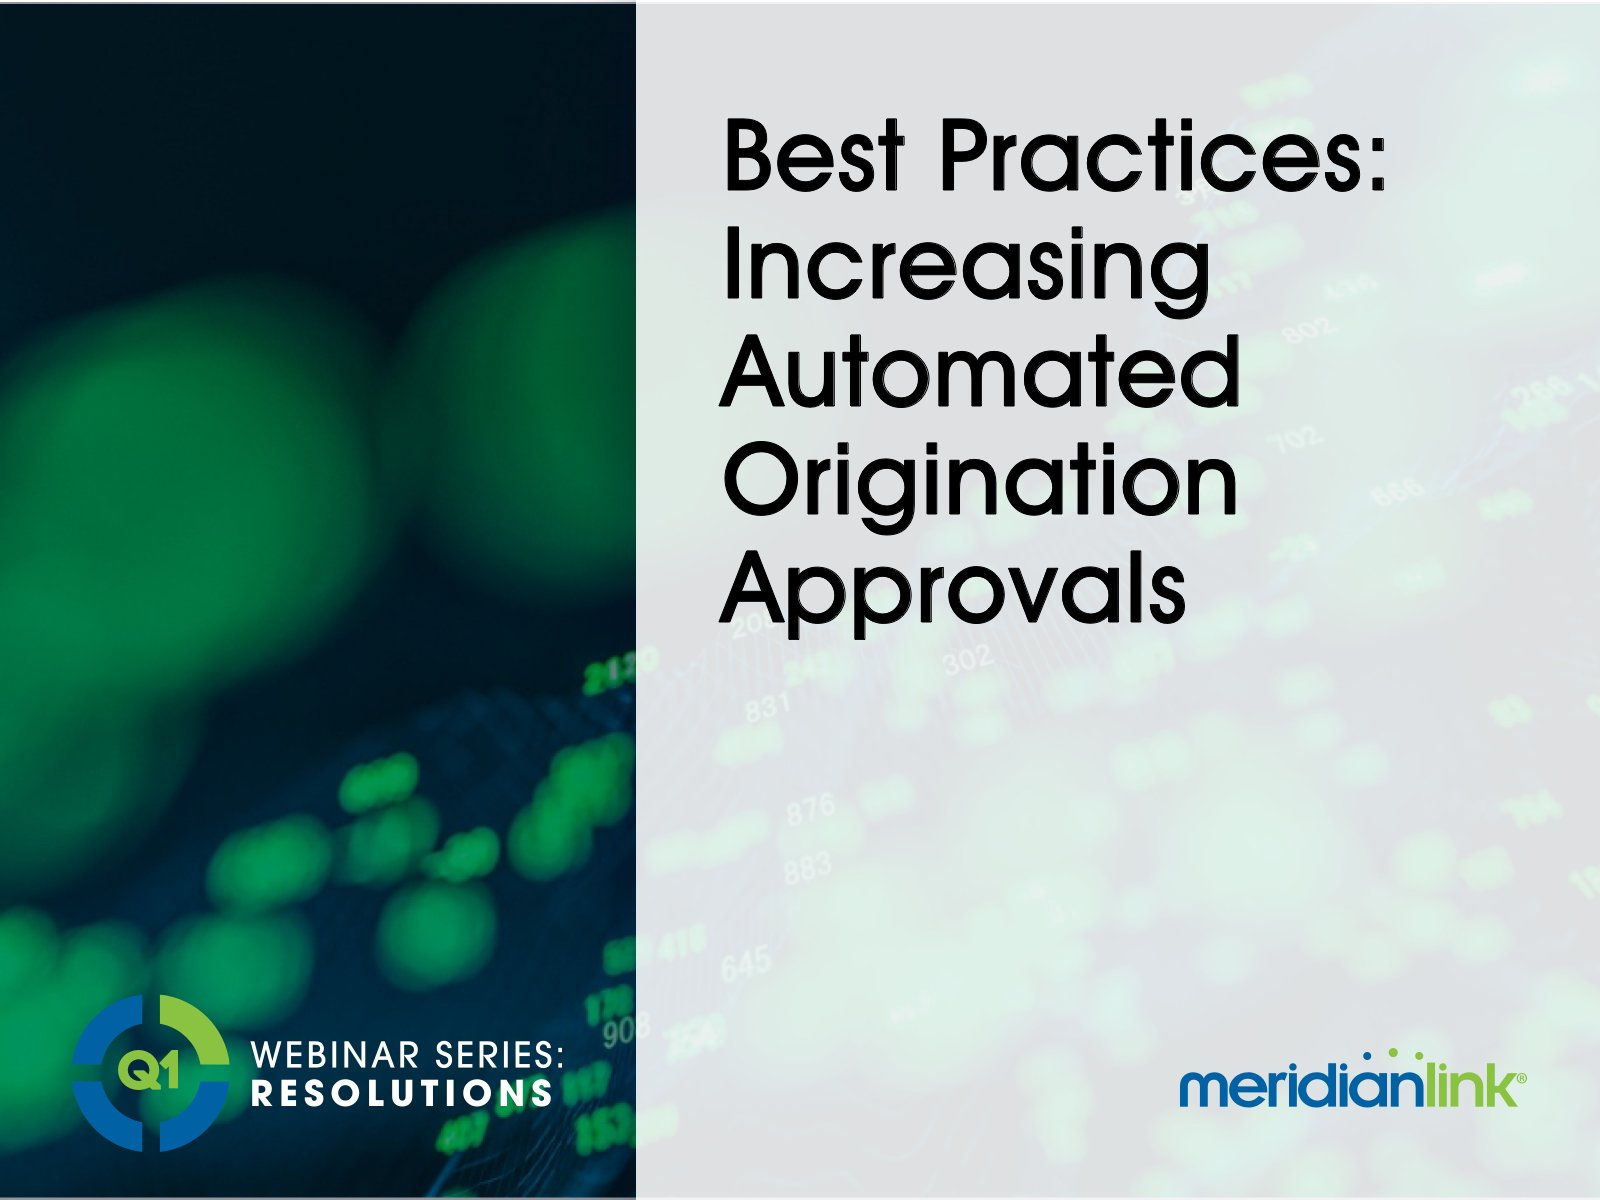 Q1-webinar-best-practices-increasing-automated-origination-approvals